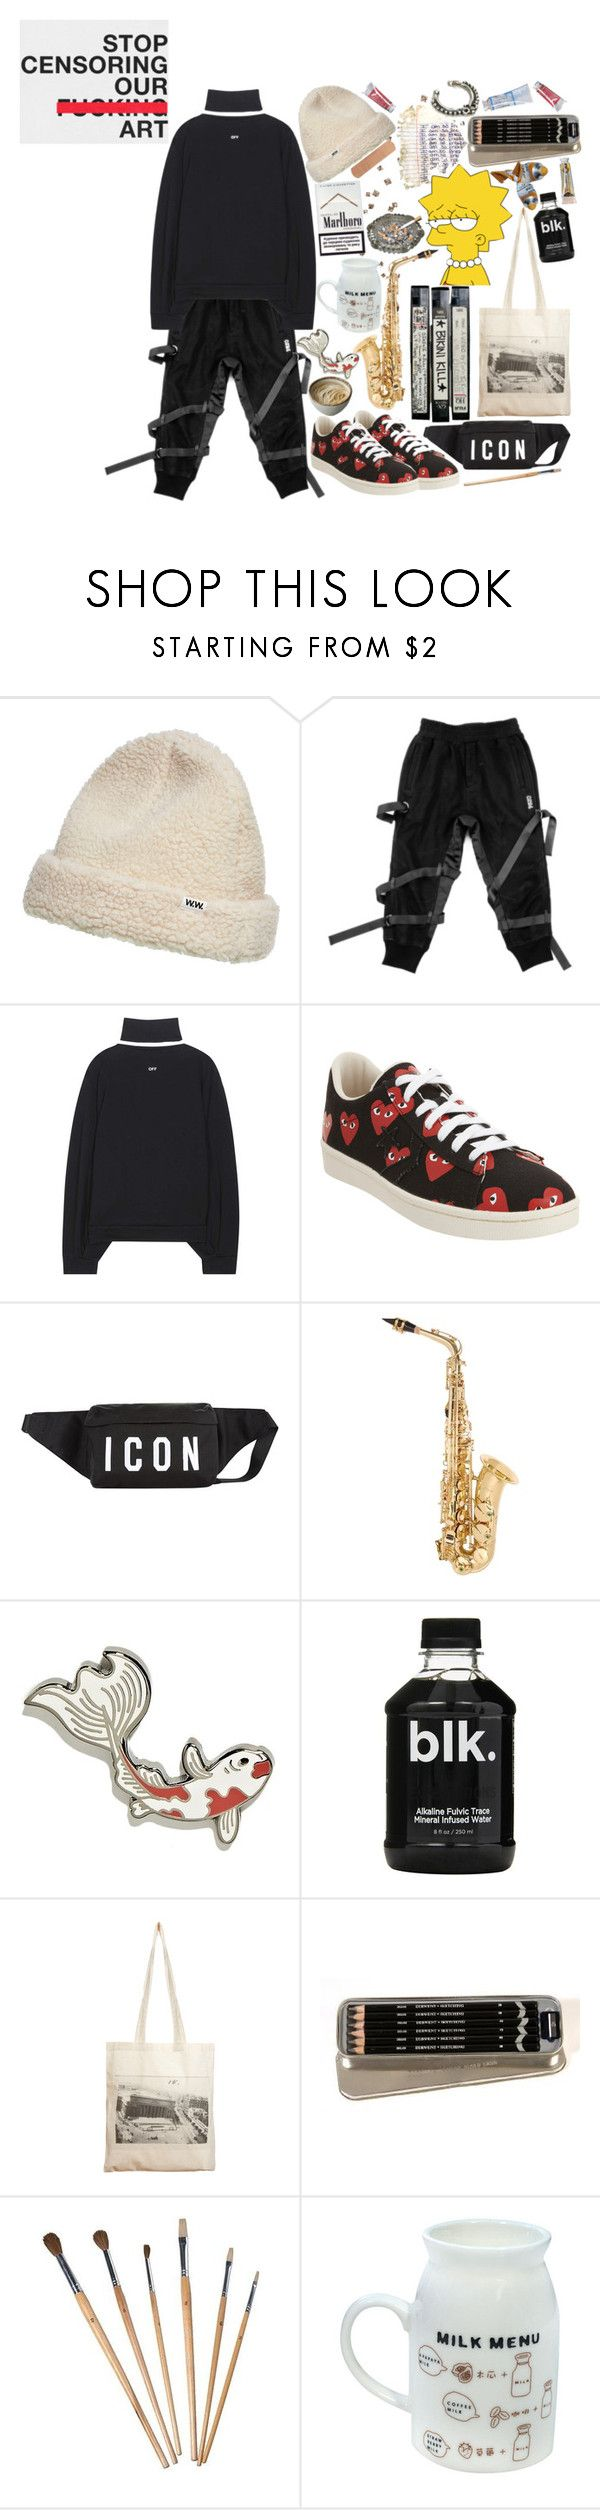 """""""le drugs"""" by tasnim-ali ❤ liked on Polyvore featuring Wood Wood, Off-White, Play Comme des Garçons, Dsquared2, Odyssey, Borders&Frontiers, Reclaimed Vintage, Marlboro, dsquared2 and offwhite"""